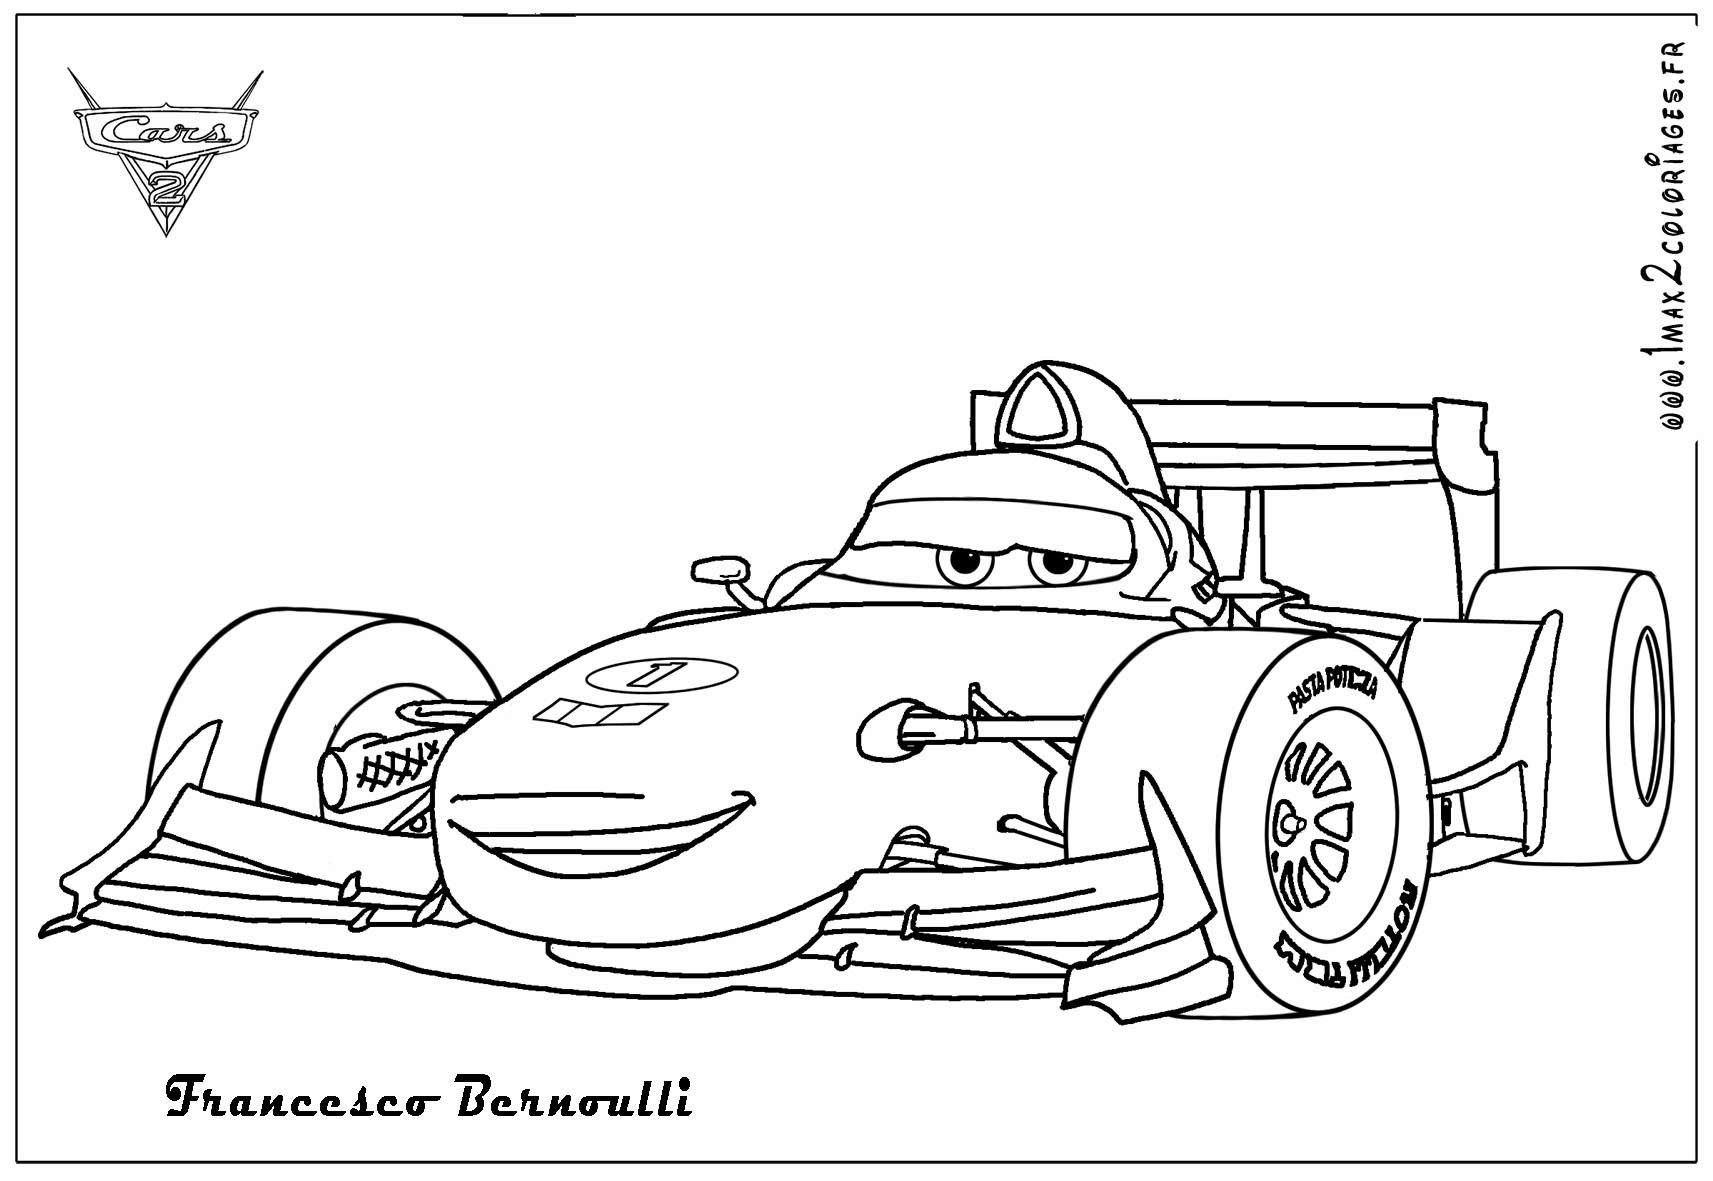 Cars 2 coloring pages - Cars 2 Francesco Bernoulli Coloring Pages Coloring Pics